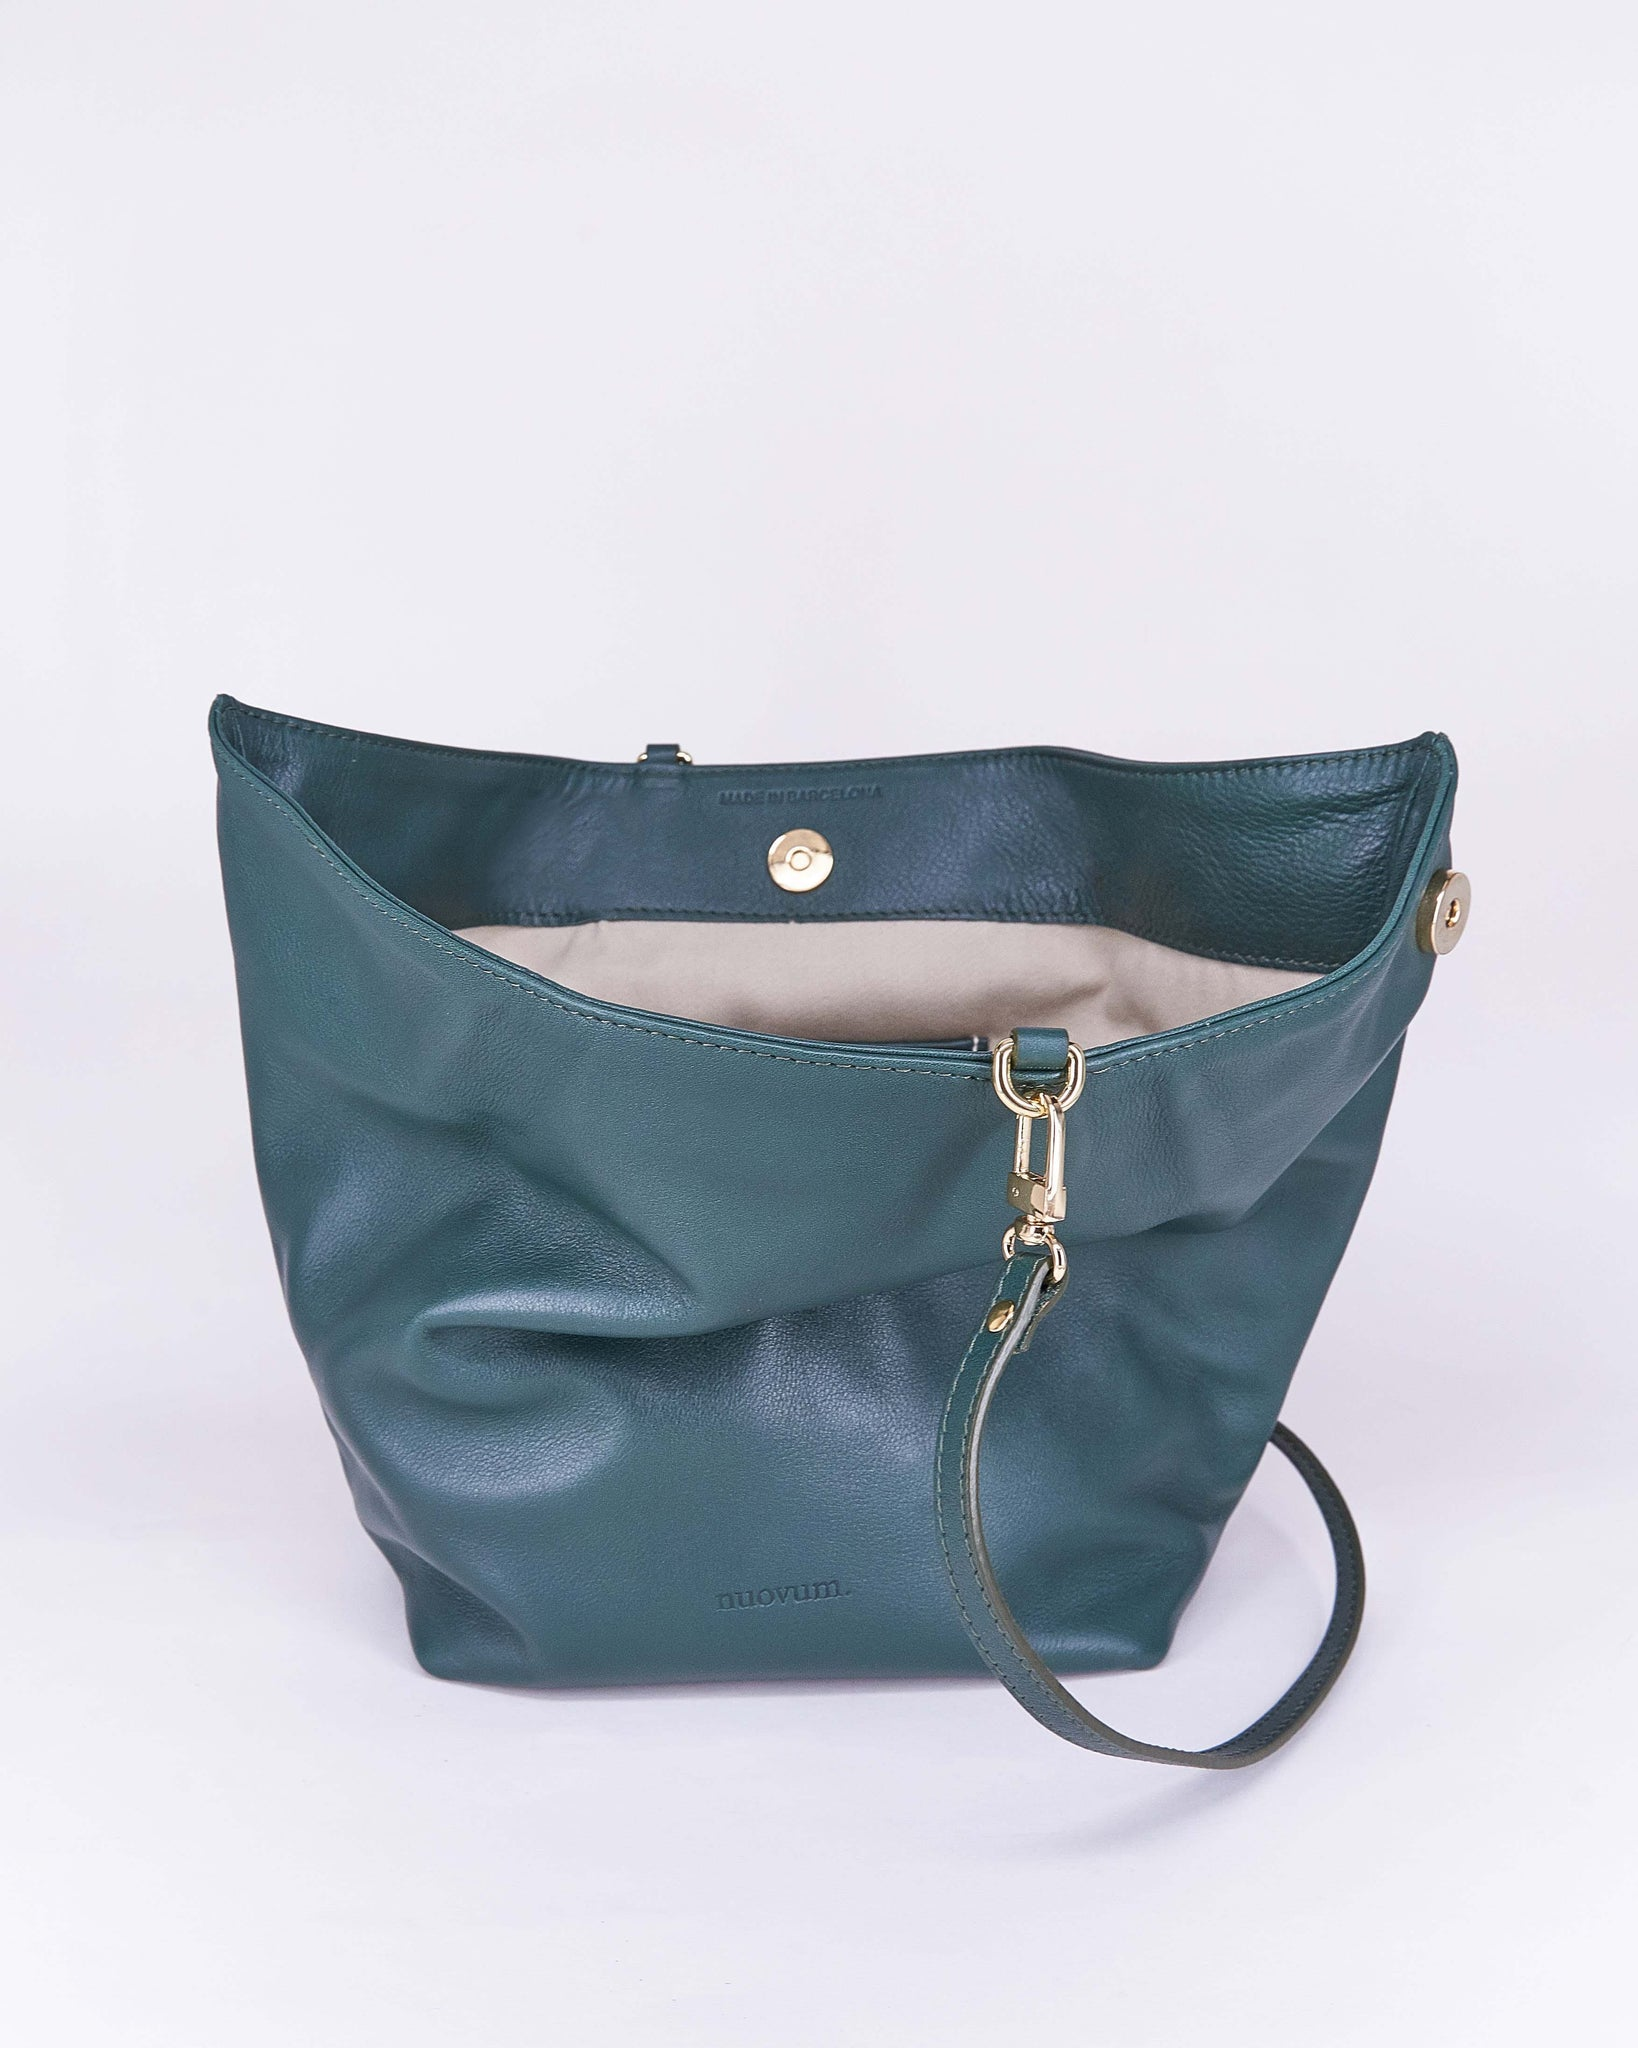 Bigcandy-Forest-Open-Leather-Bag-Nuovum-Localdesigners-Handmade-Madeinbarcelona